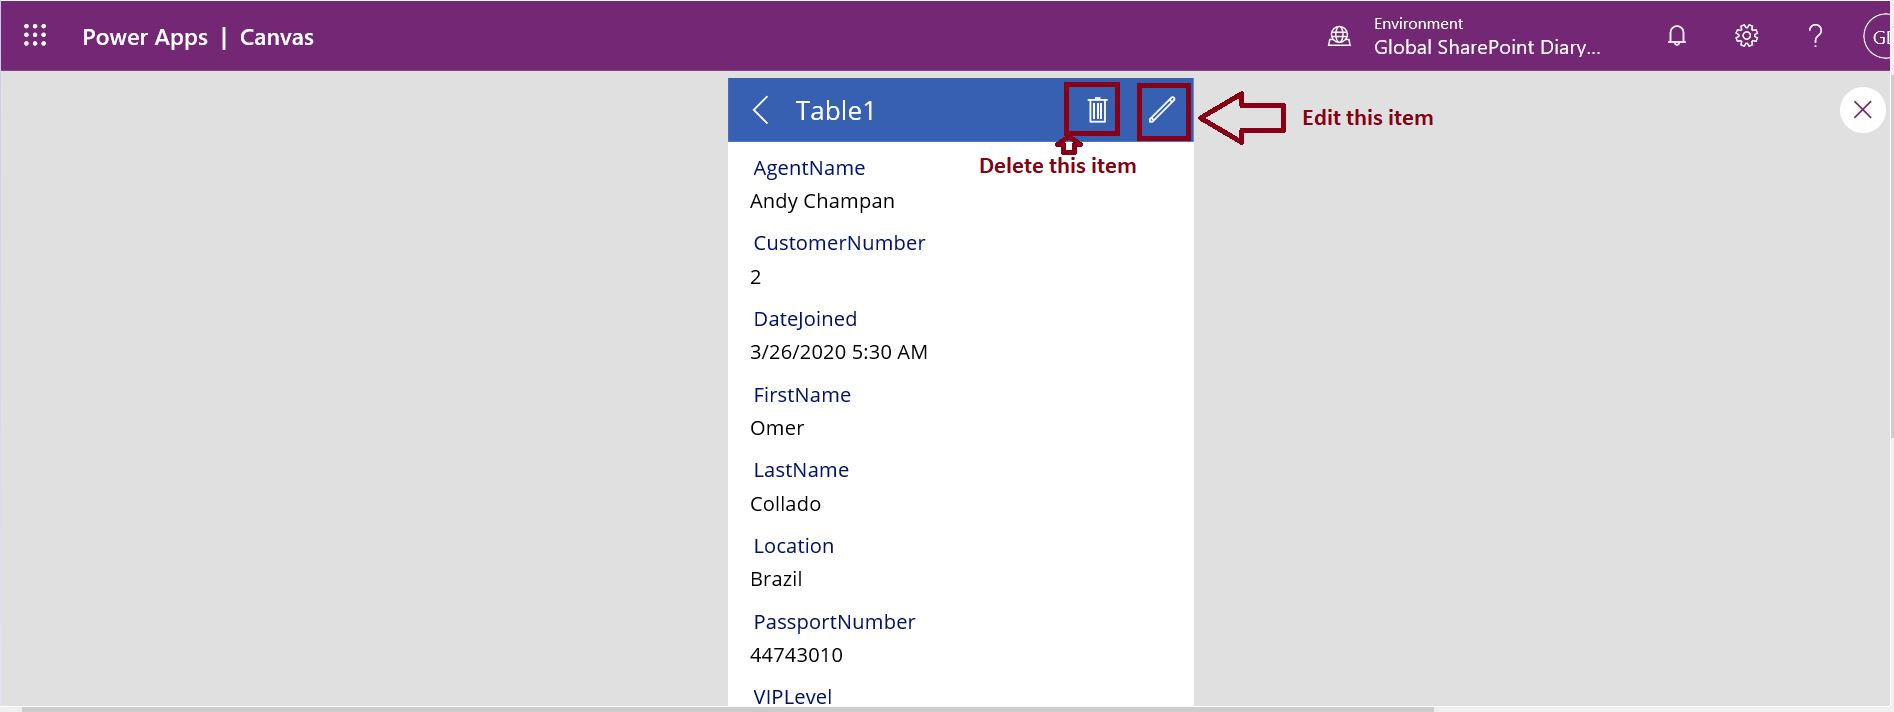 Delete and edit item in PowerApps model driven app